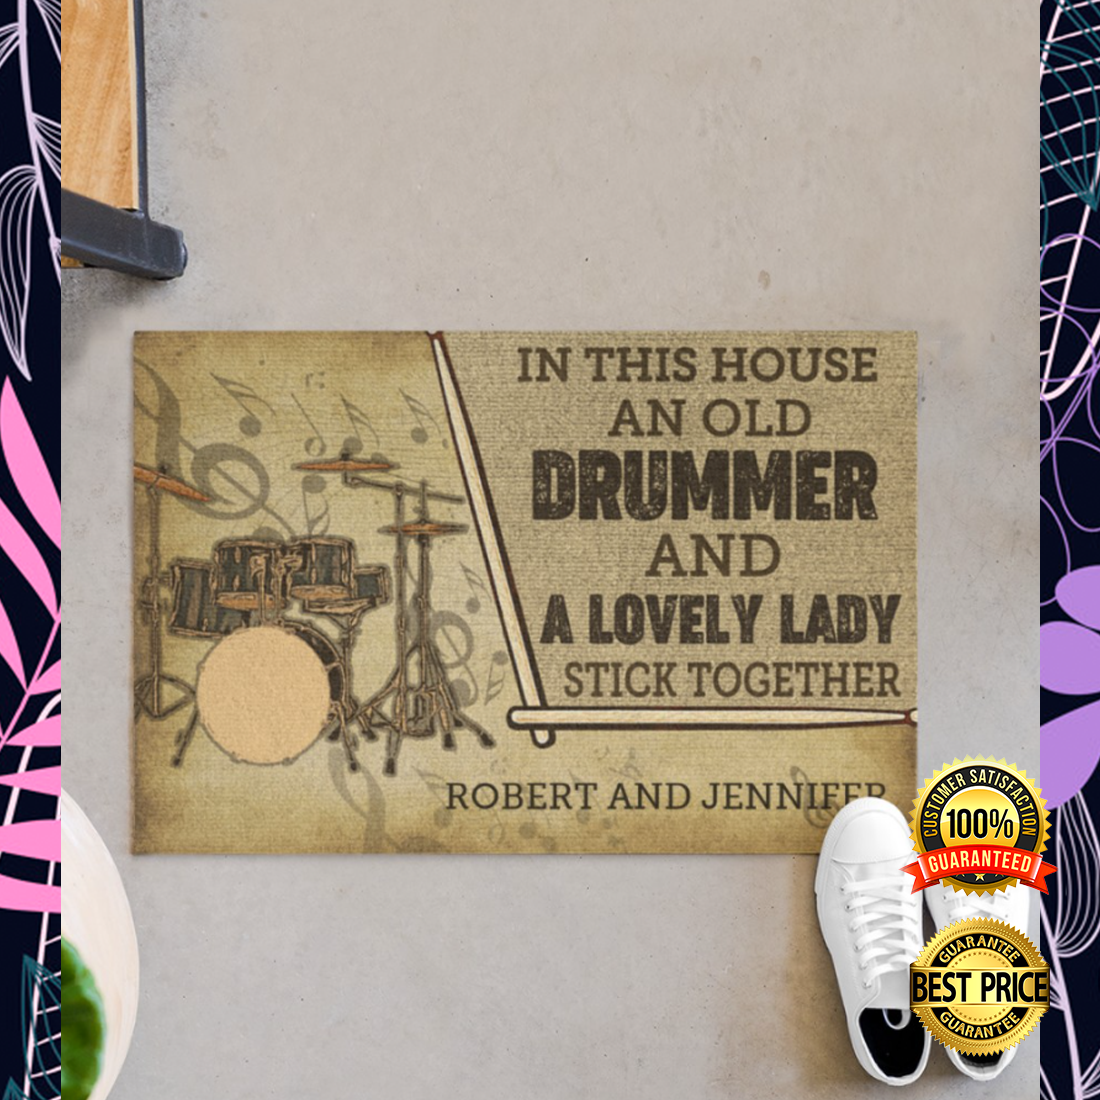 Personalized in this house an old drummer and a lovely lady stick together doormat 5